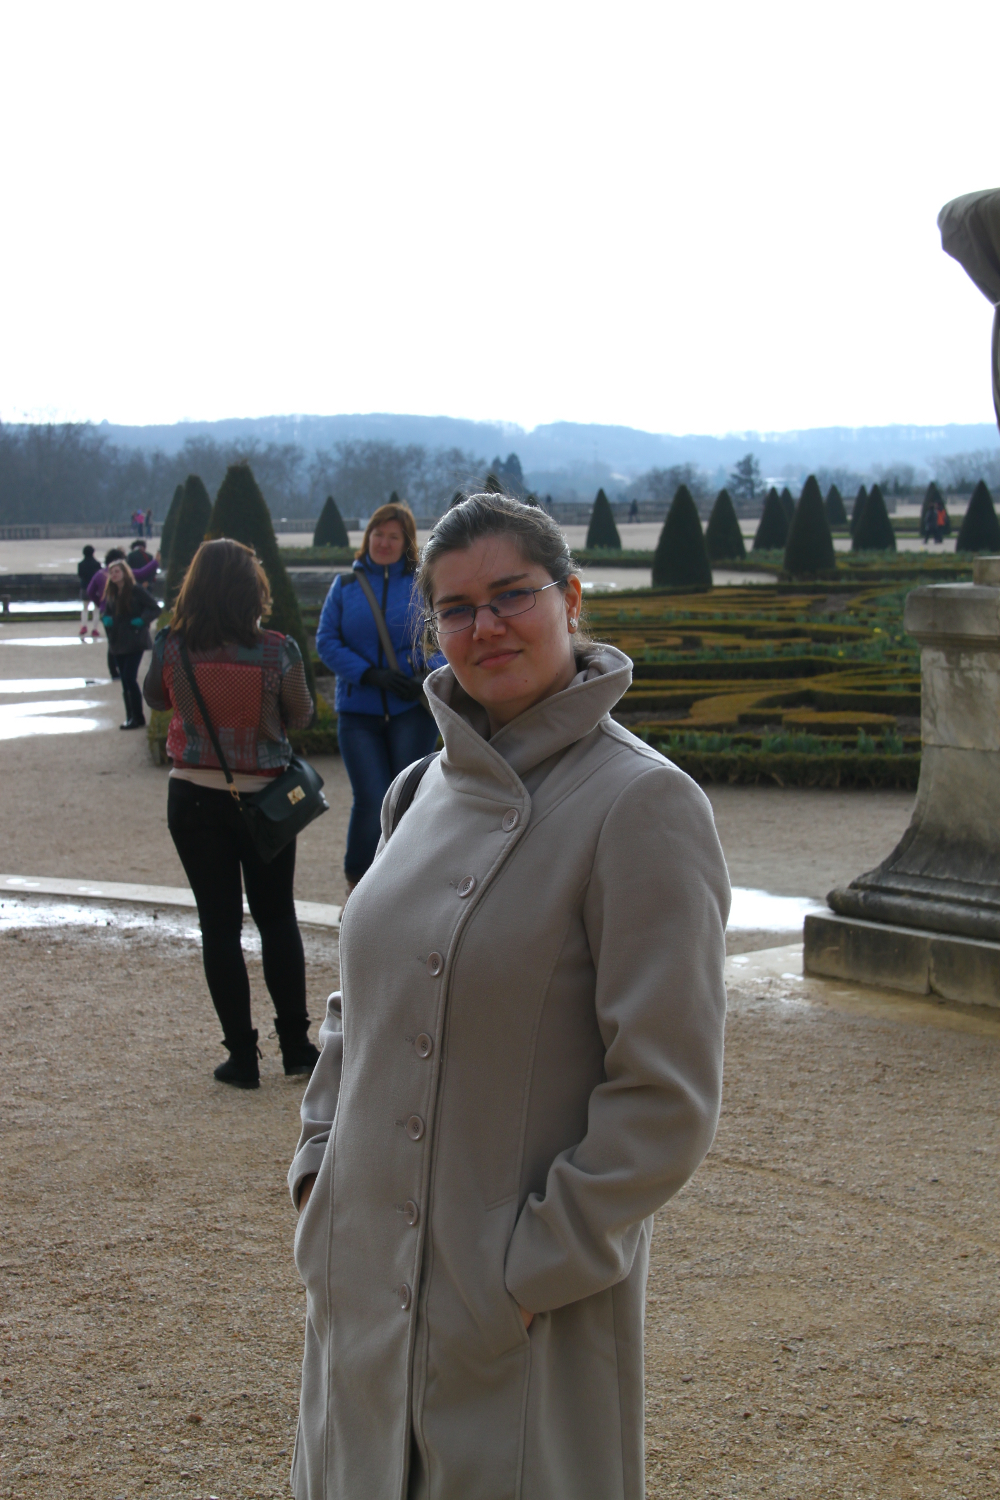 Palace of Versailles ornament Gardens